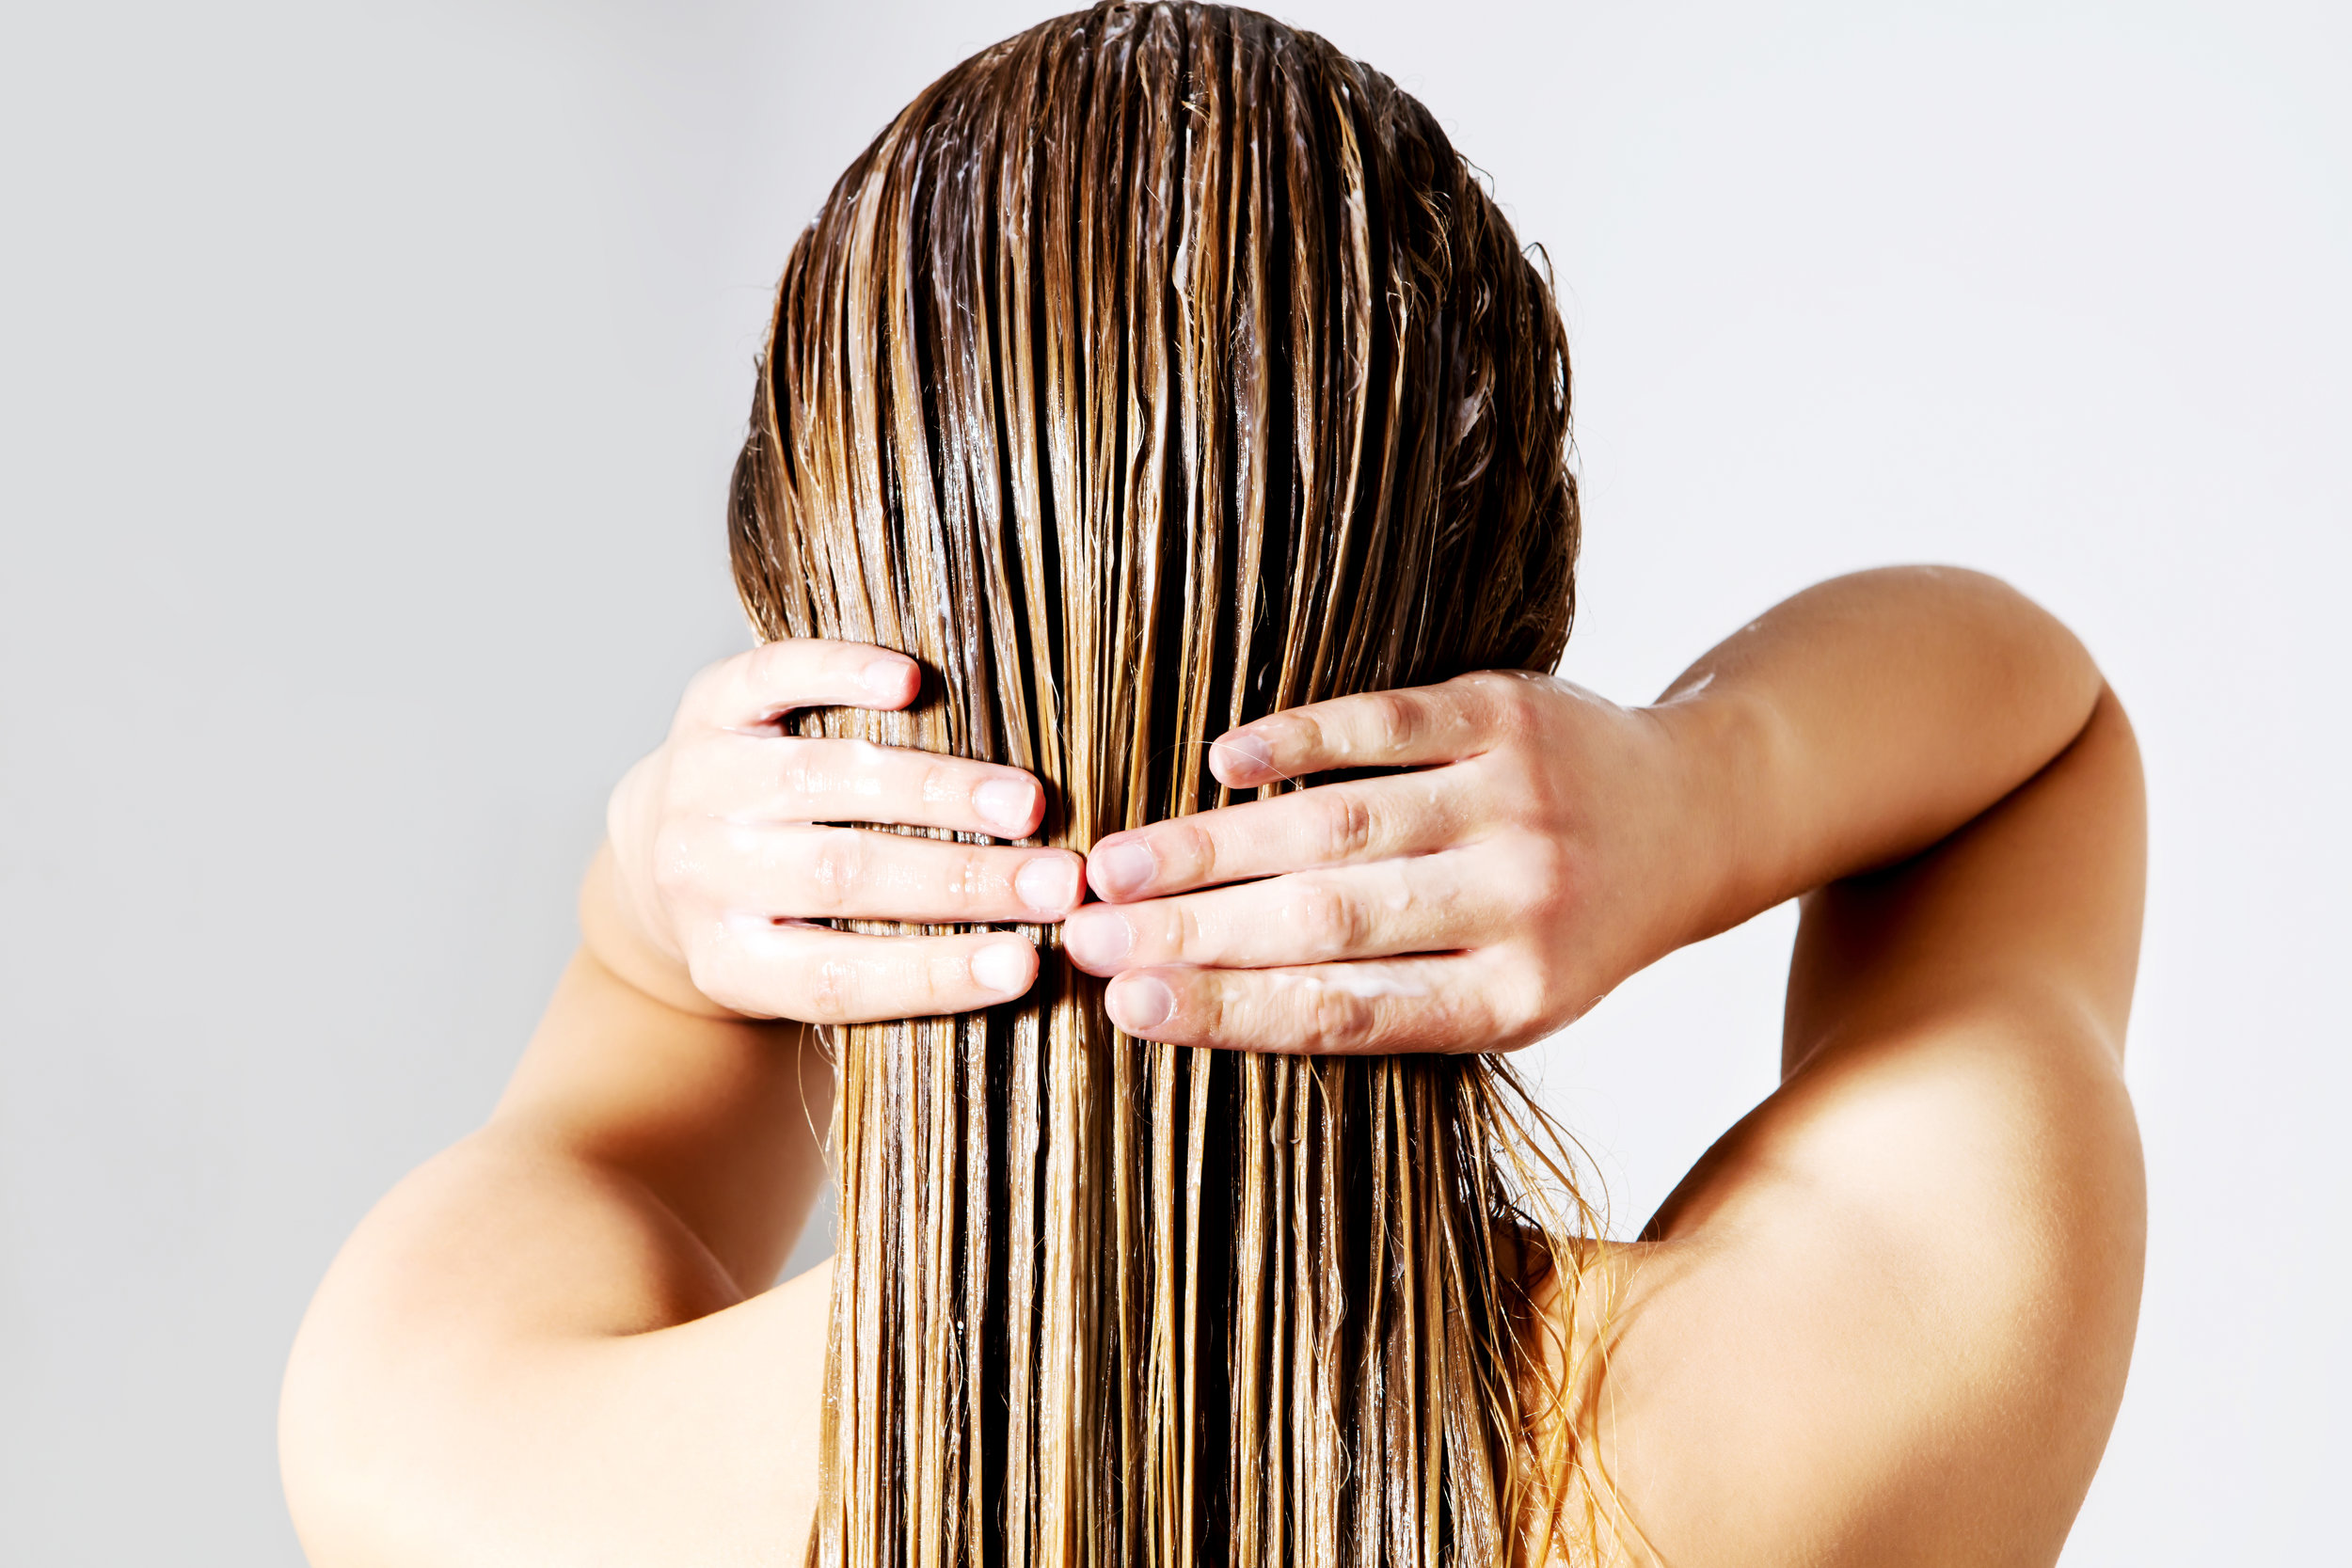 It starts in the shower - Using the right shampoo and conditioner is essential. We recommend pinpointing your main concern with your hair and selecting the products specific to helping you in that area.Use a professional product that is concentrated with quality ingredients such as Davines Oi shampoo which is perfect for anti-aging. Store-bought shampoos tend to have more water, sulfates, and fillers with fewer vitamins, oils, and minerals than salon formulations.